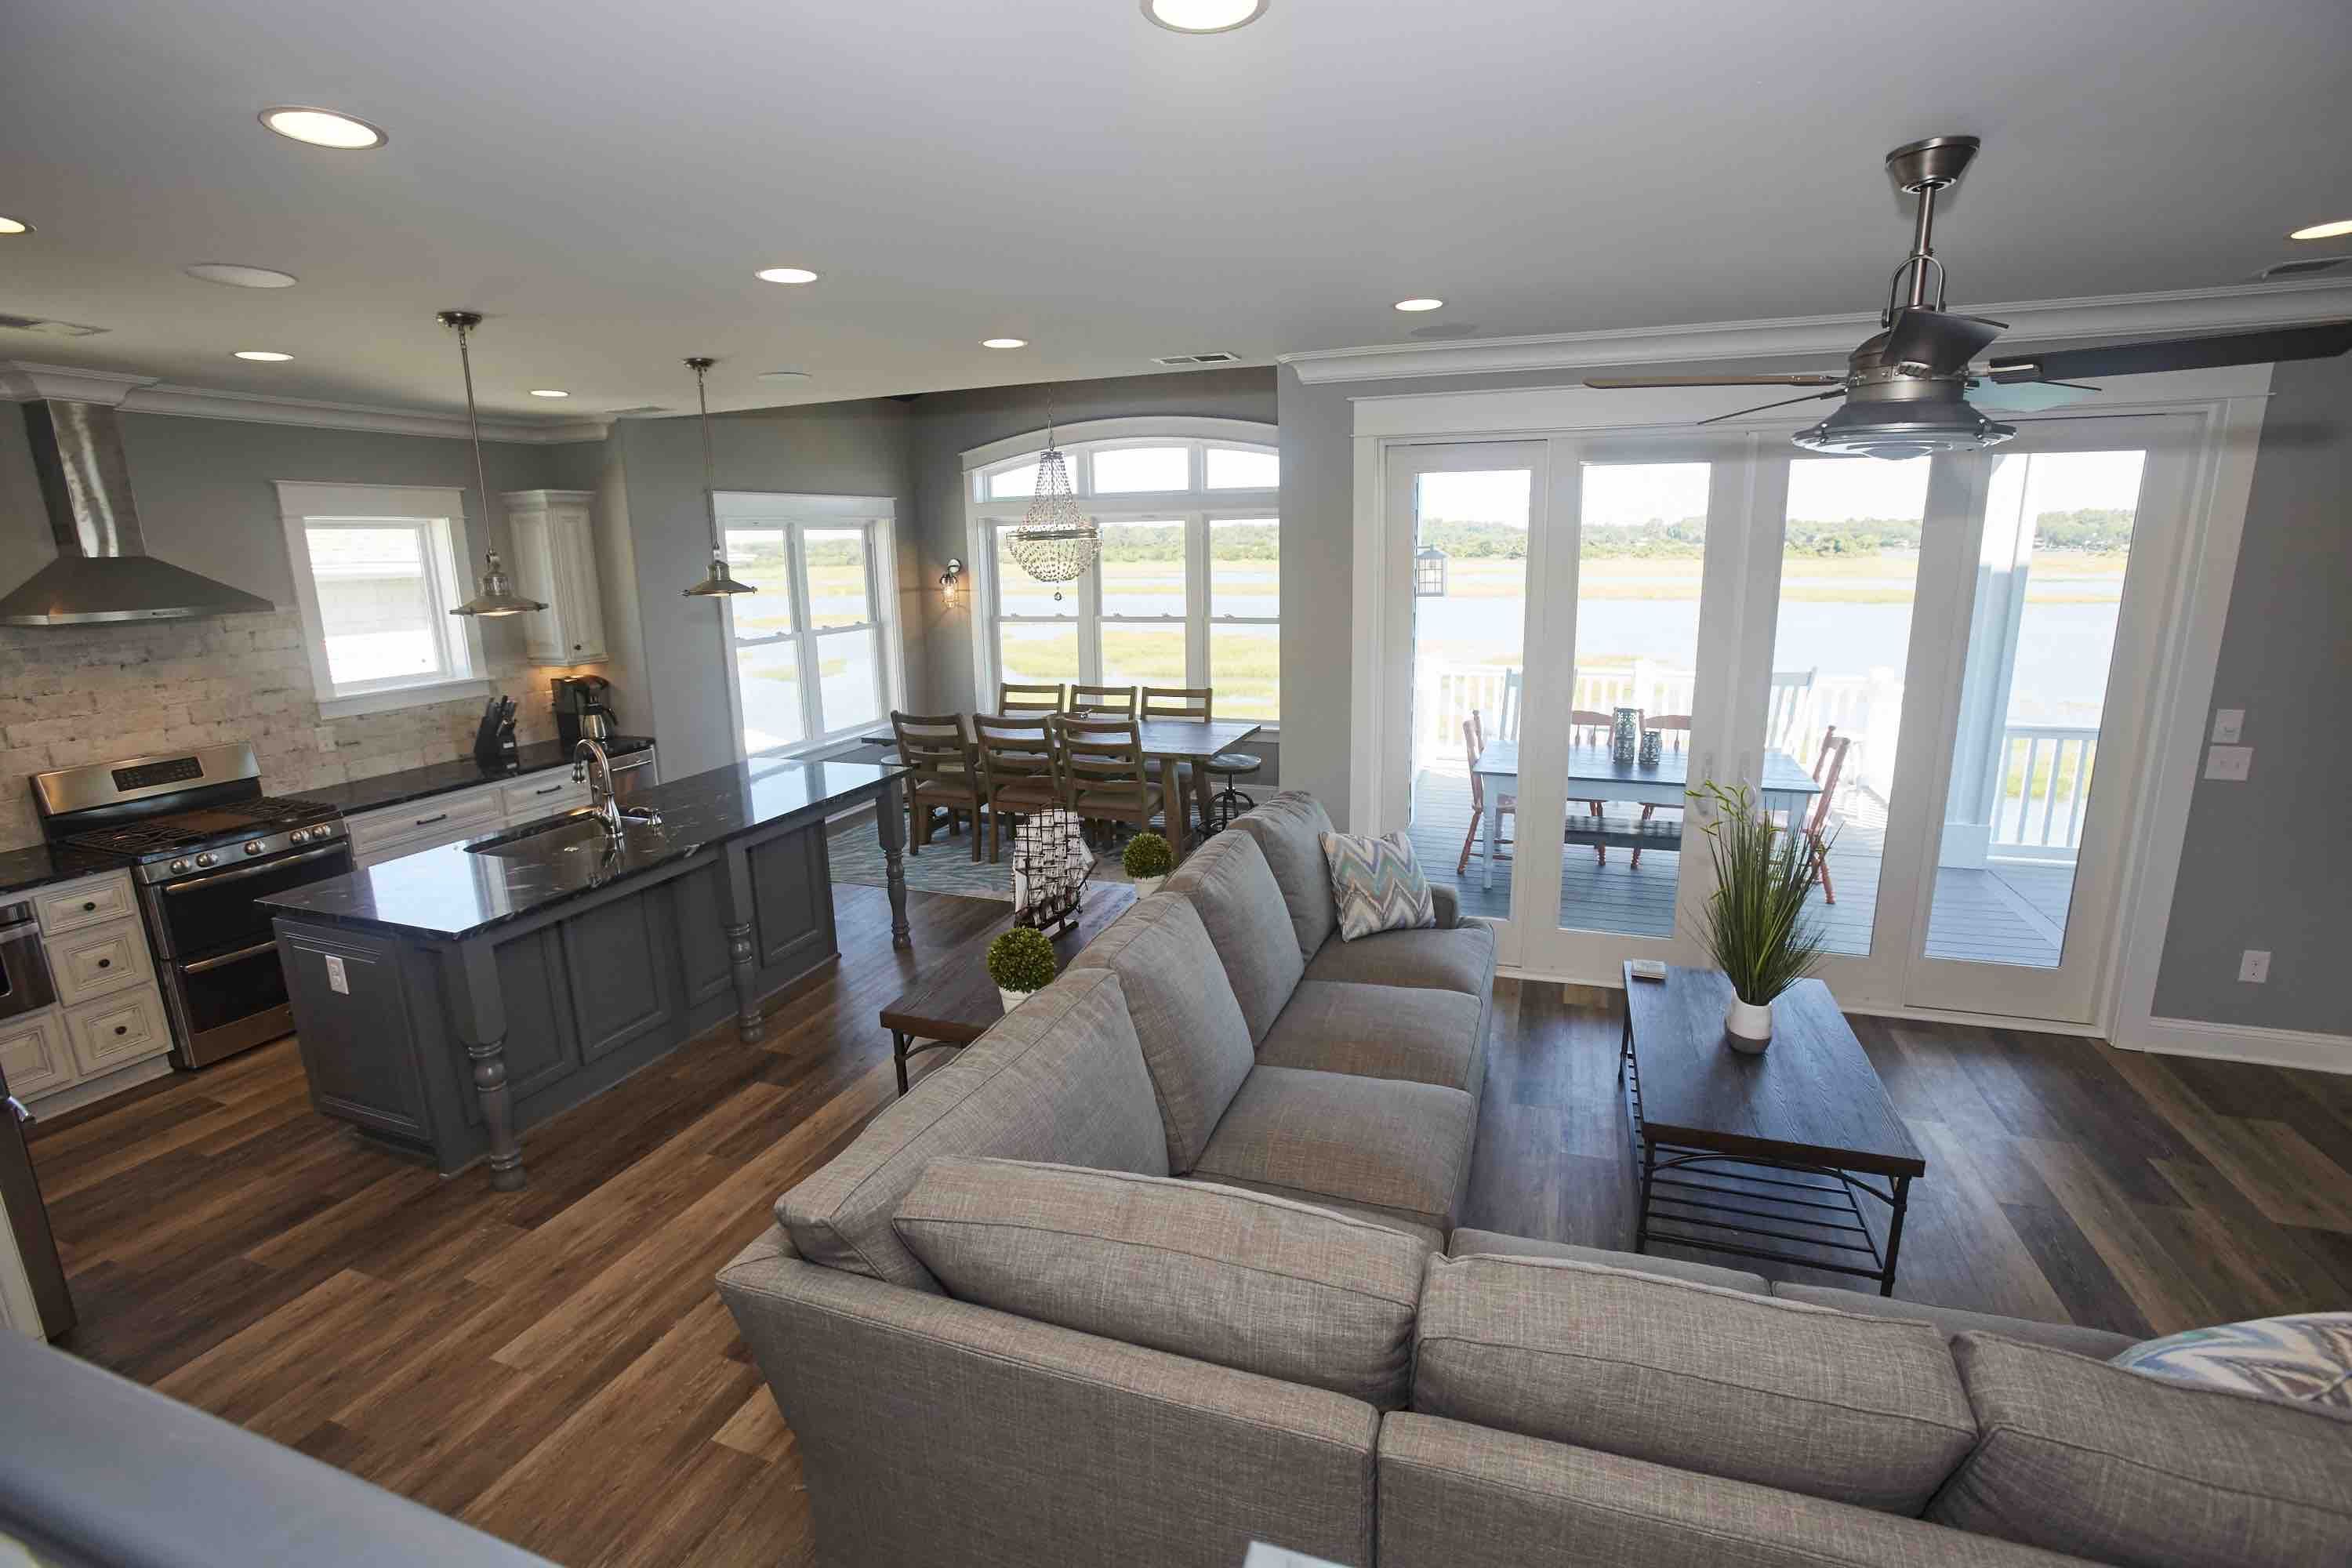 """Main Den - 60"""" flat screen TV, surround sound, plenty of seating for a crowd!  Beautiful view of the sound - you can't go wrong relaxing in this room.  #vacation #oceanisle #anyportinastorm"""